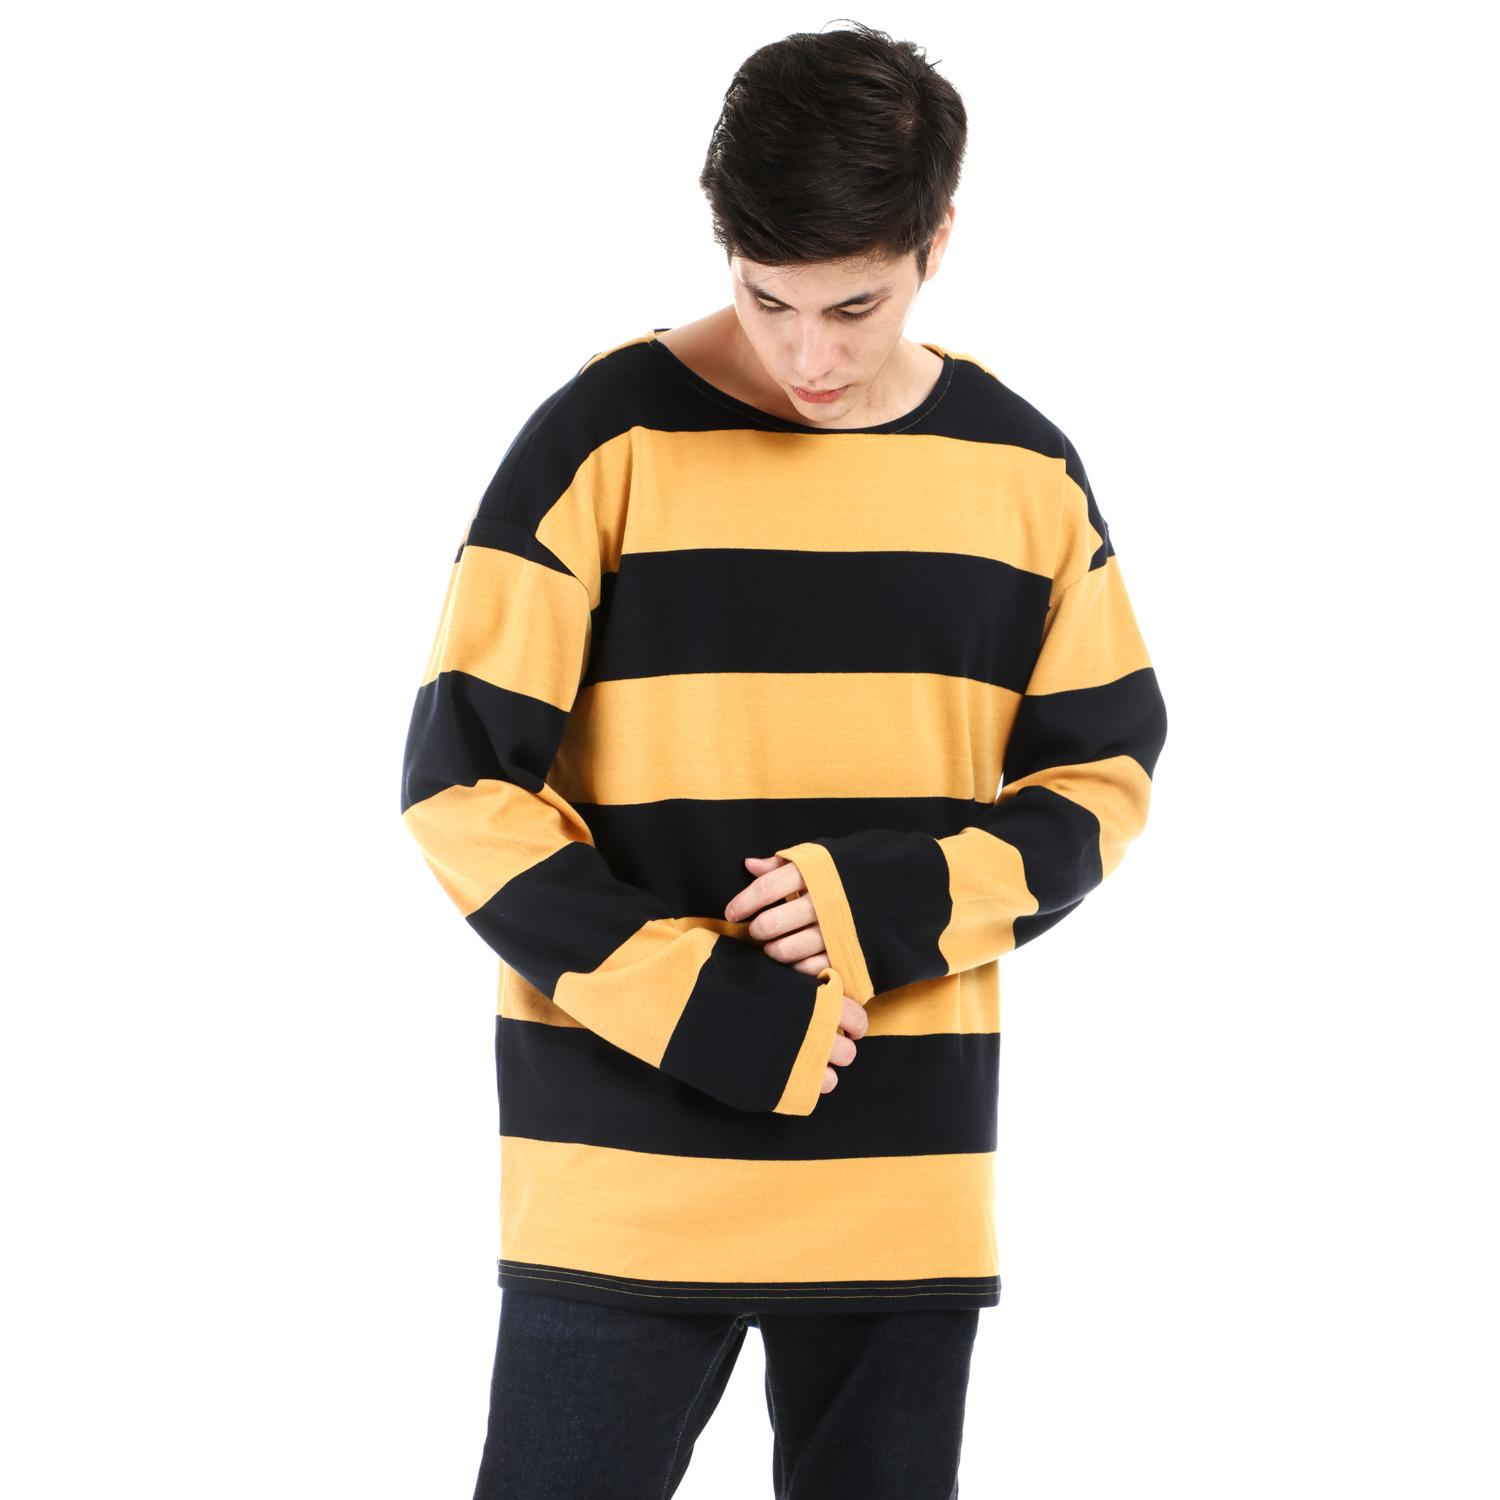 7373ba94d604 Sweaters for Men for sale - Mens Sweaters online brands, prices ...